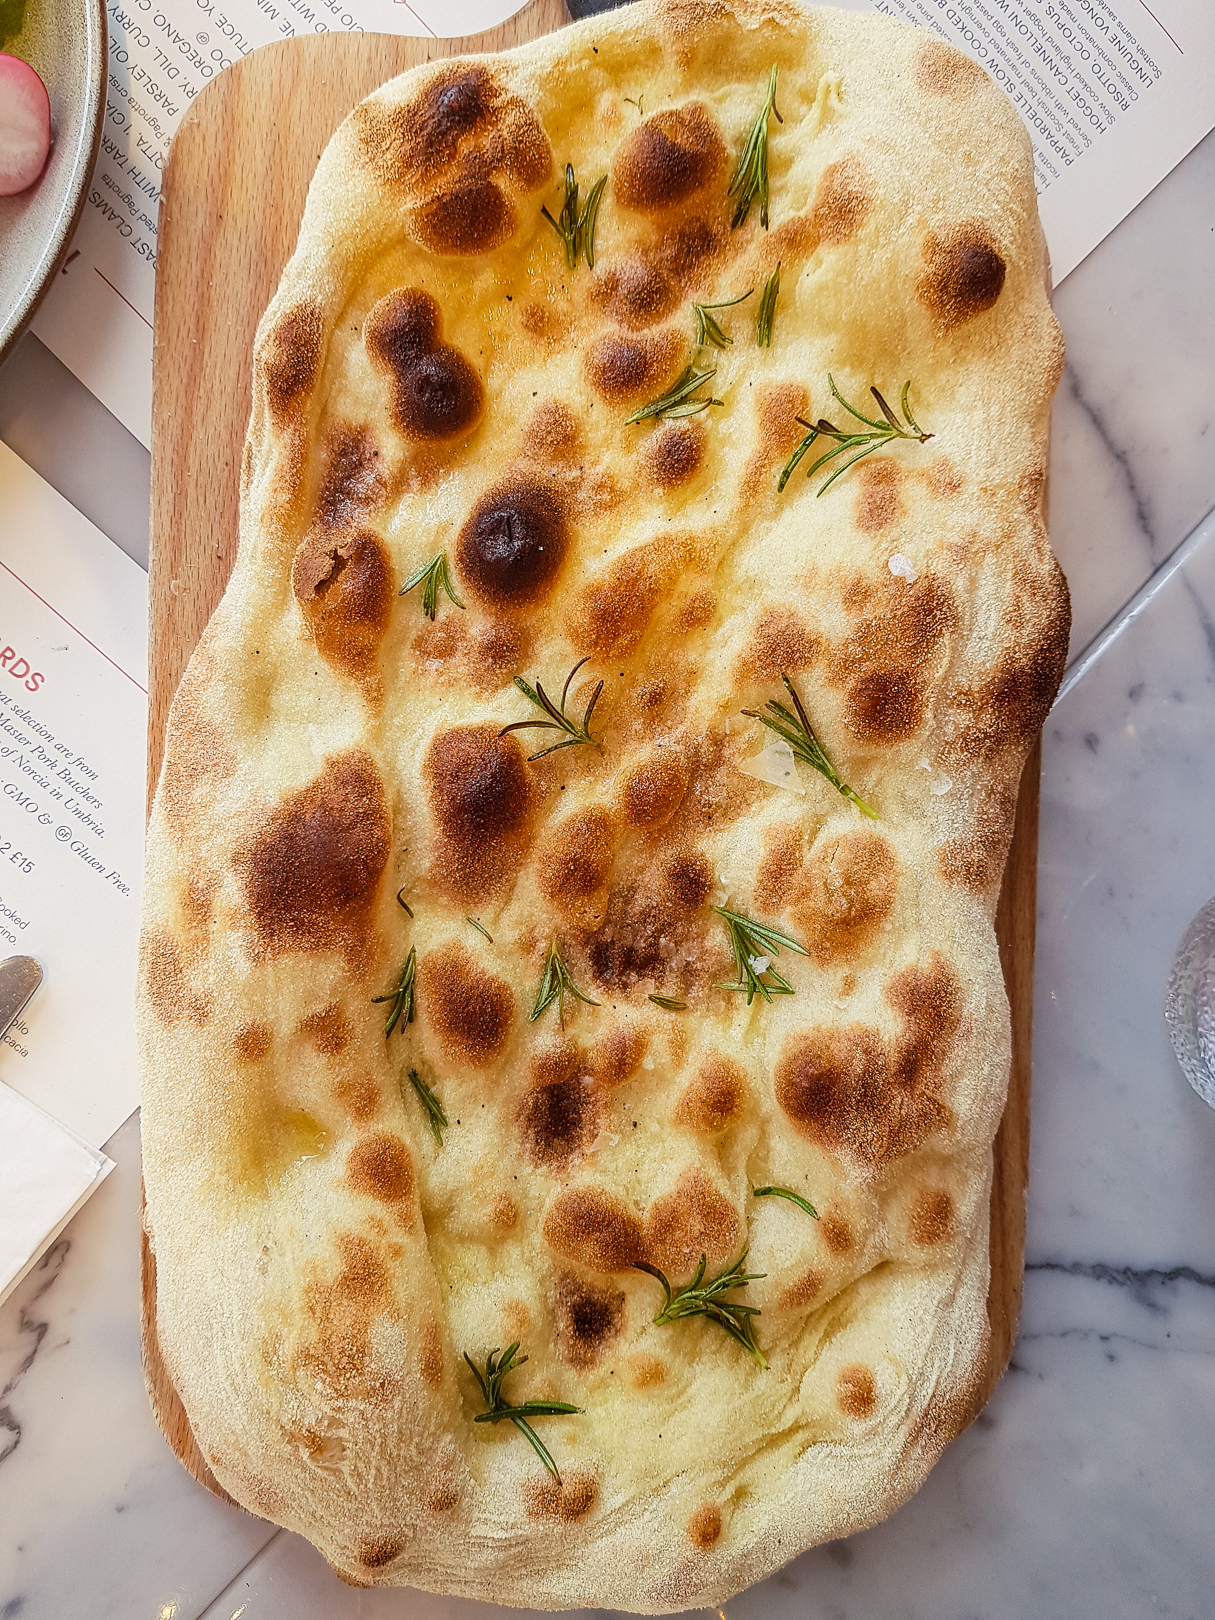 Focaccia at Eusebi Deli in Glasgow.